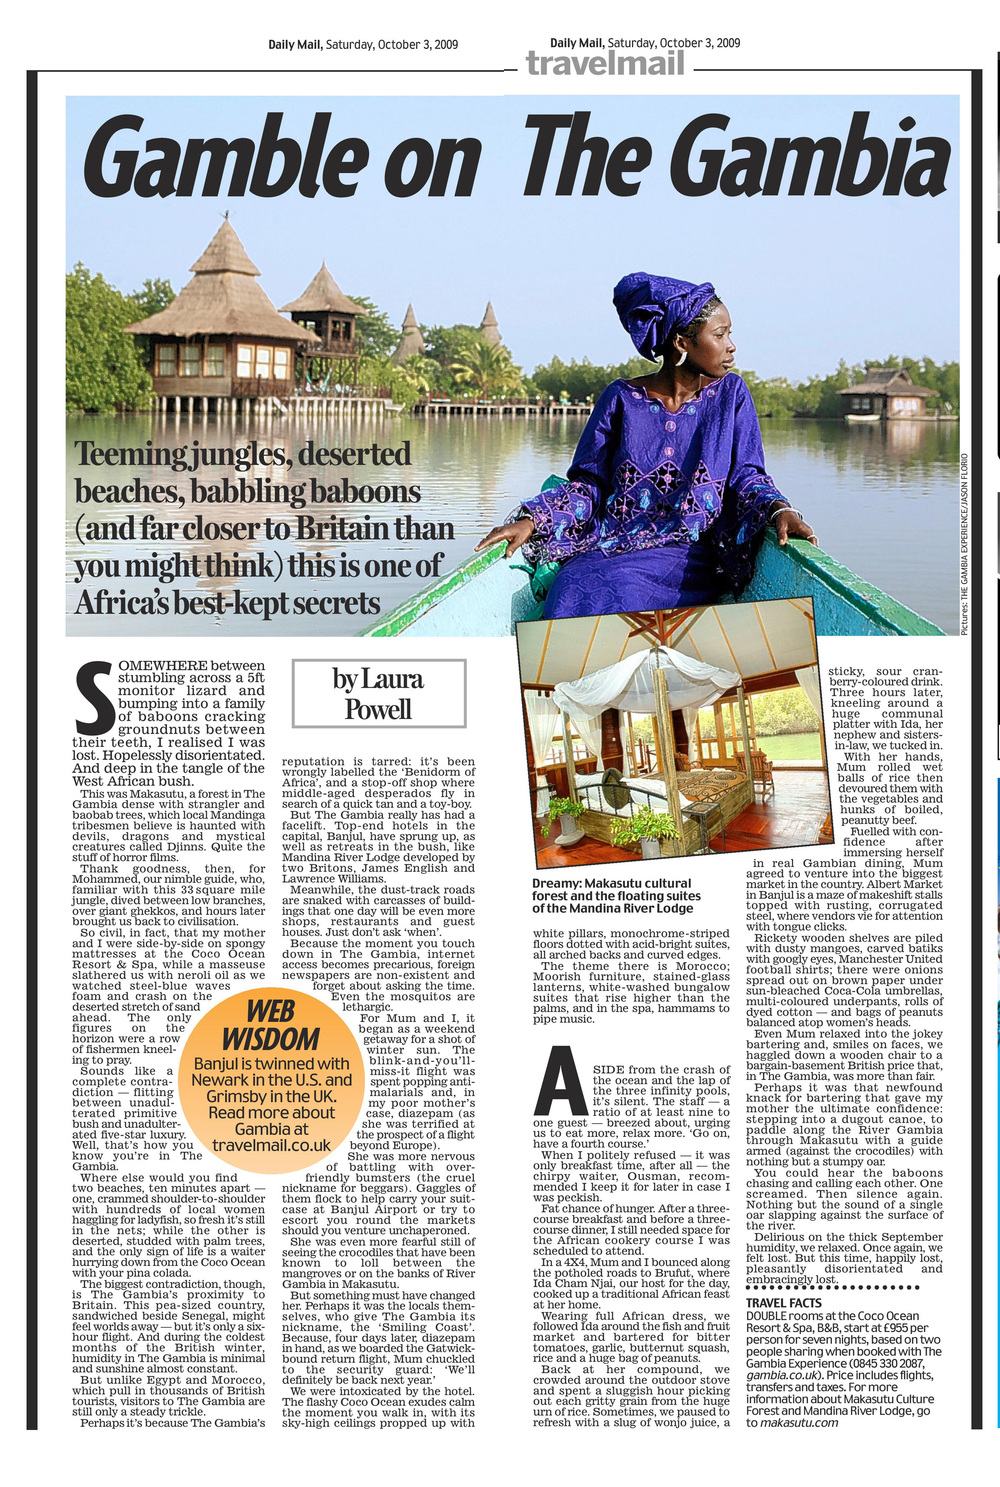 The Gambia   Daily Mail